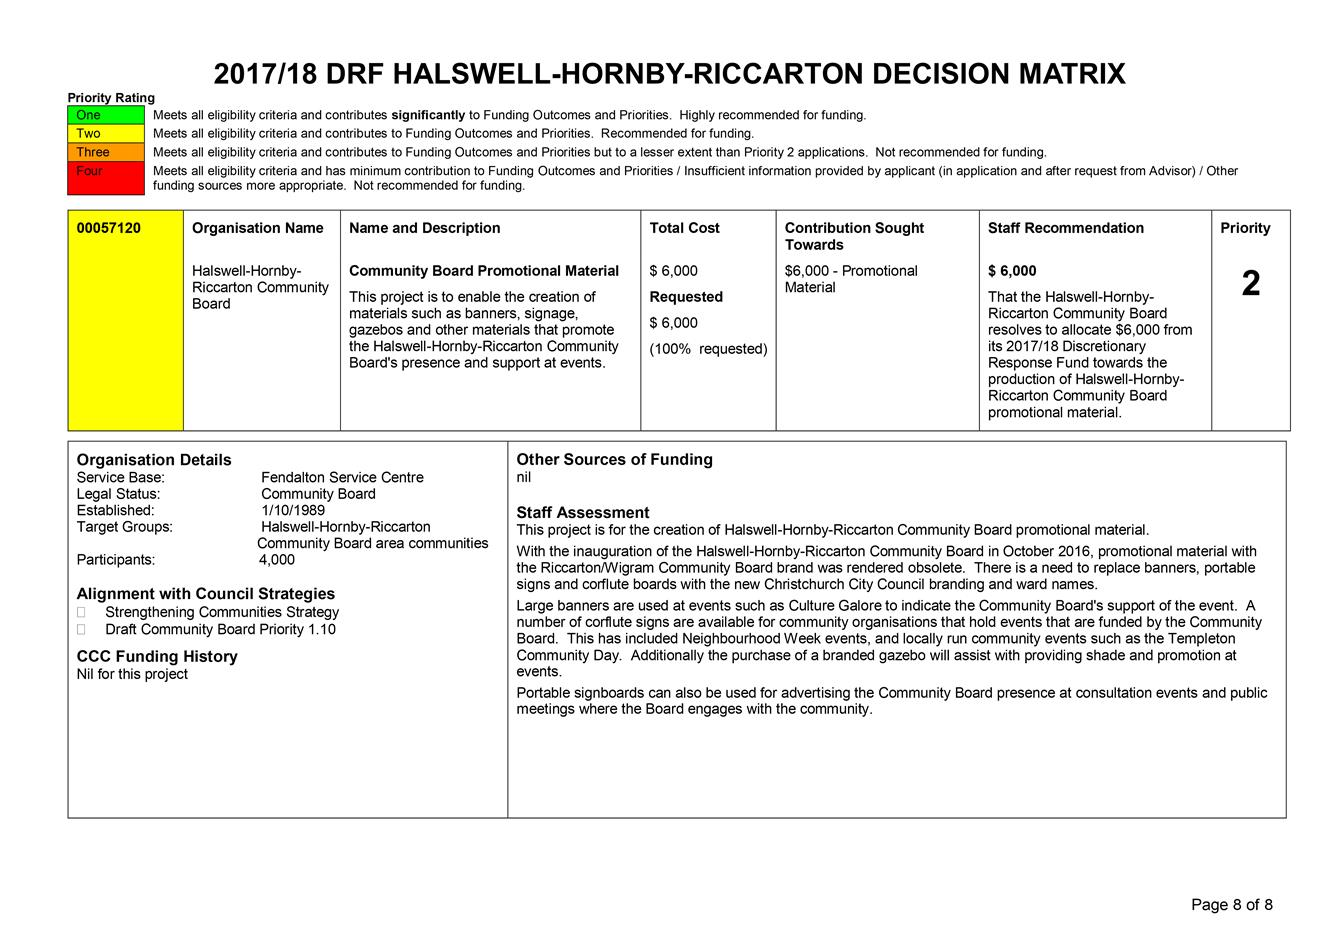 Agenda Of Halswell Hornby Riccarton Community Board 12 September 2017 Westfieldworld Kitcar Support Site Westfield Wiring Diagram Pdf Creator